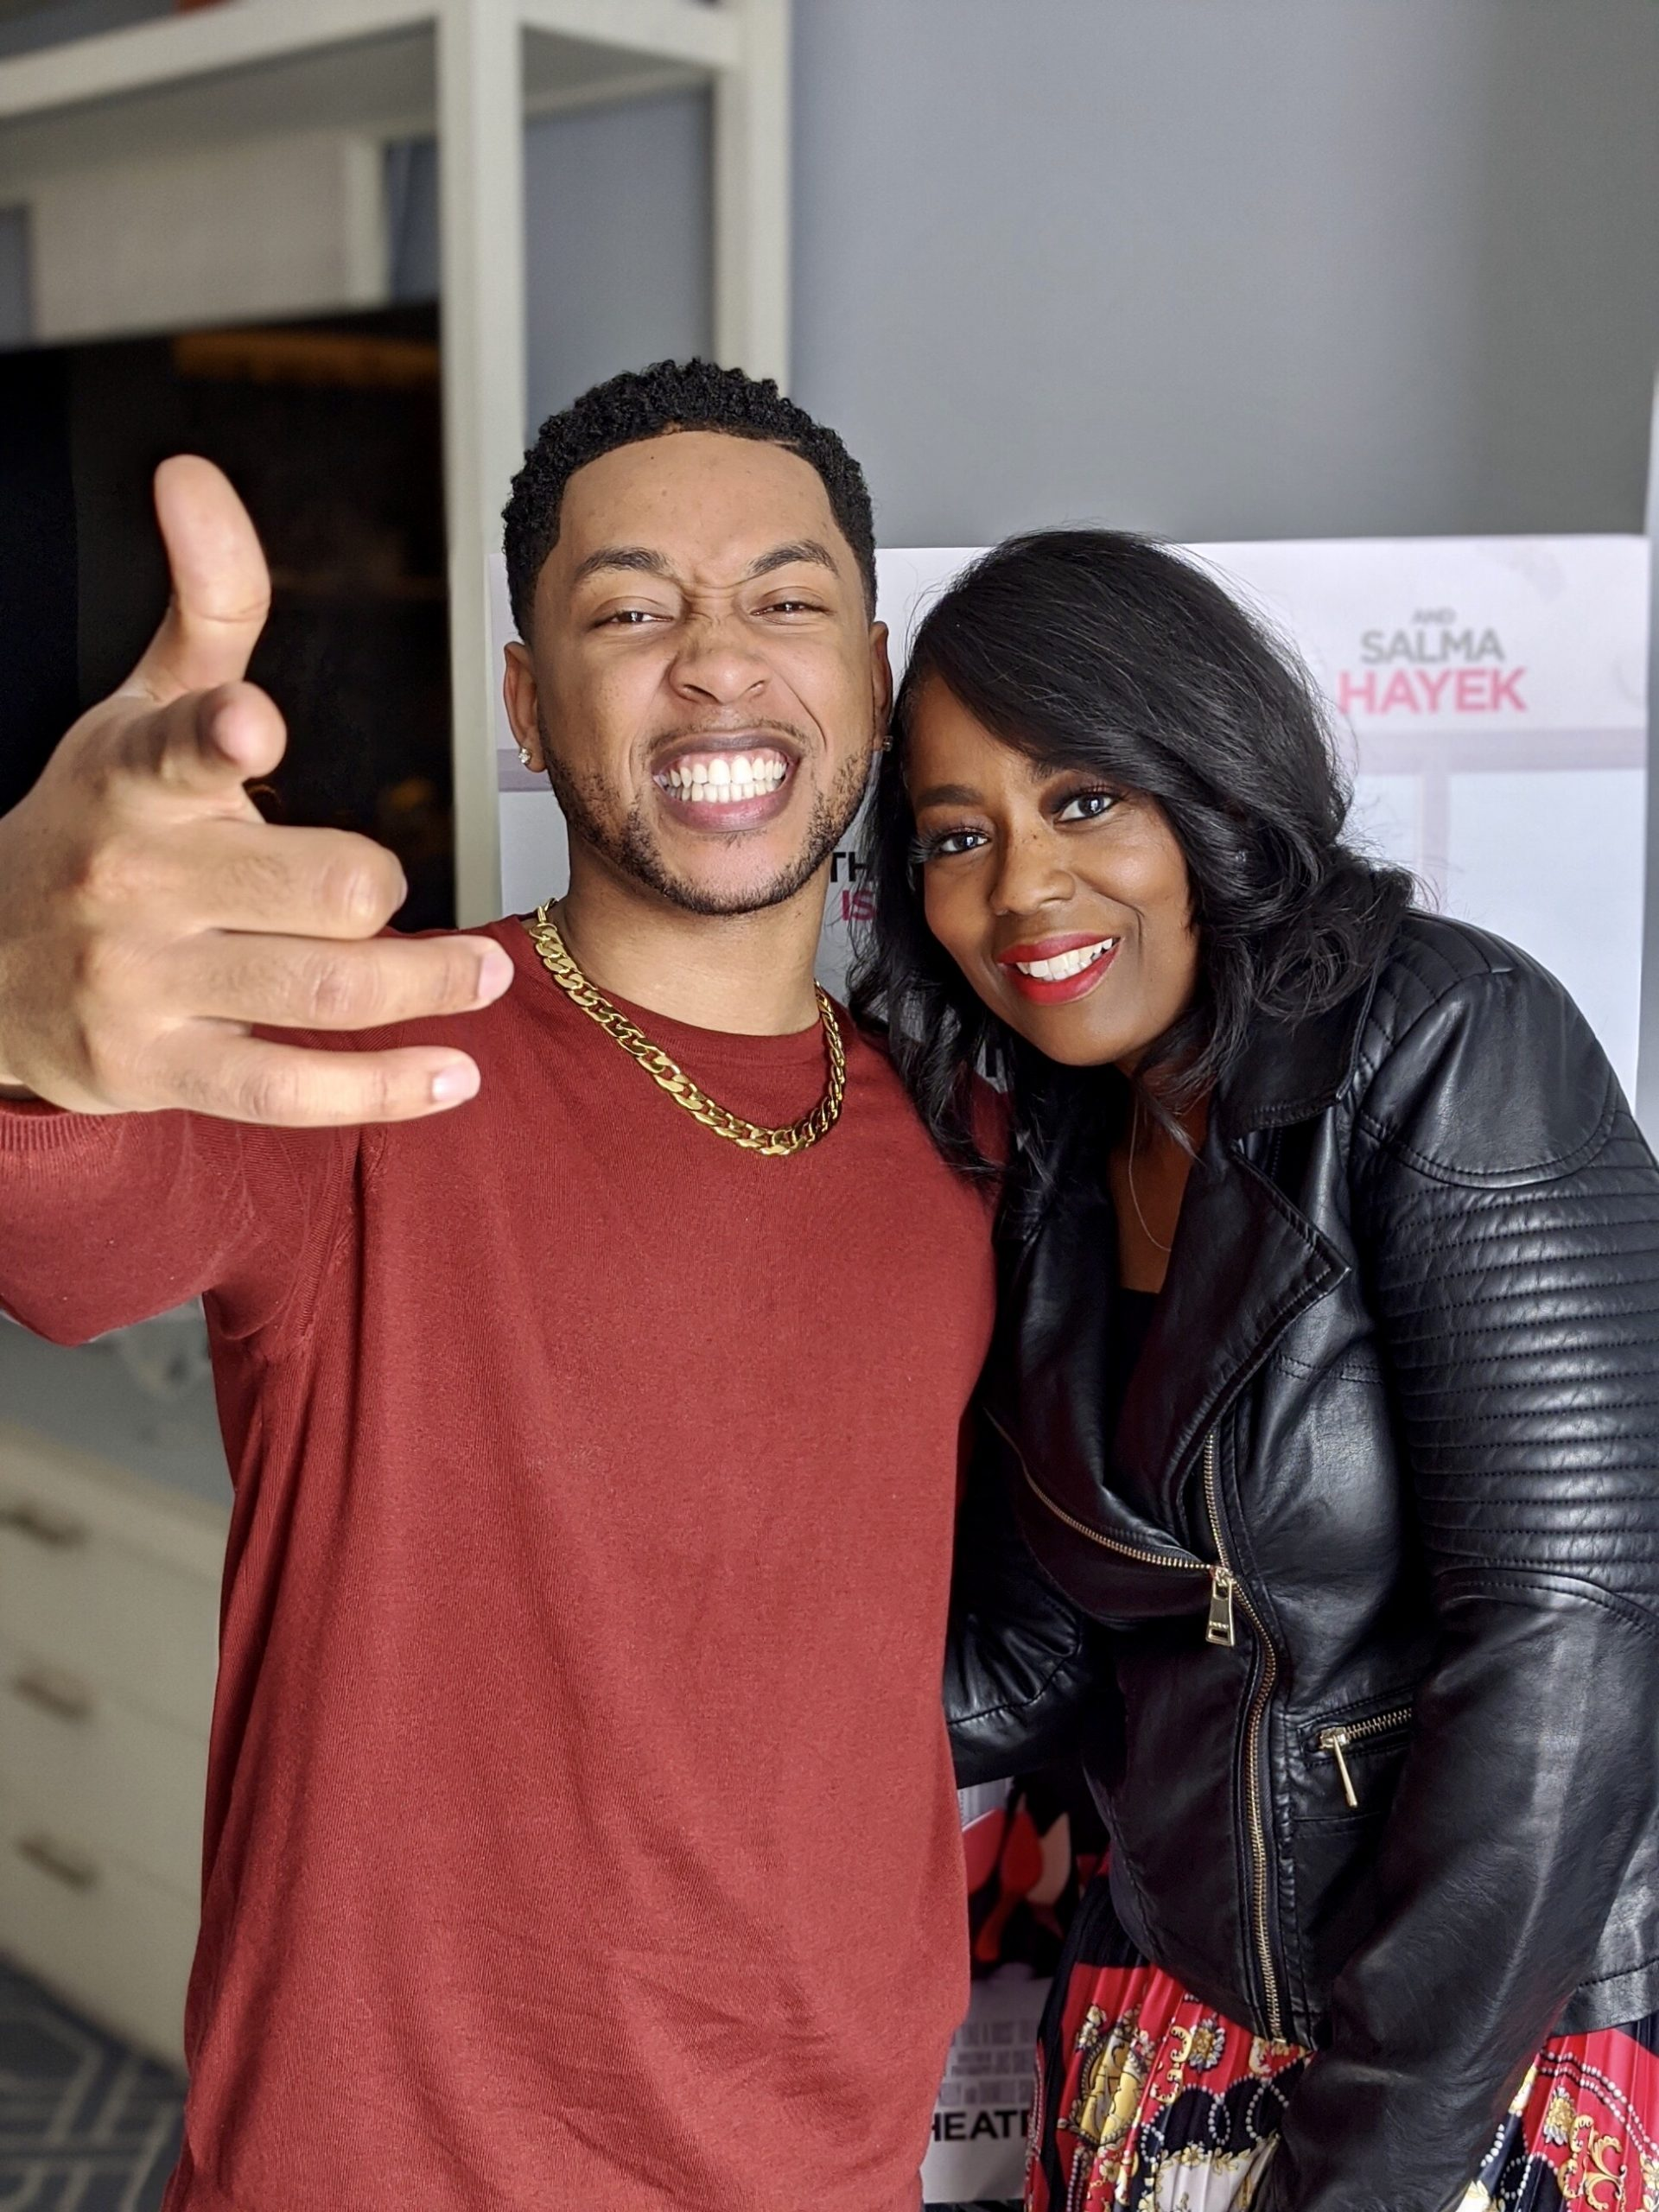 My Sit Down With Actor Jacob Latimore From 'Like A Boss'